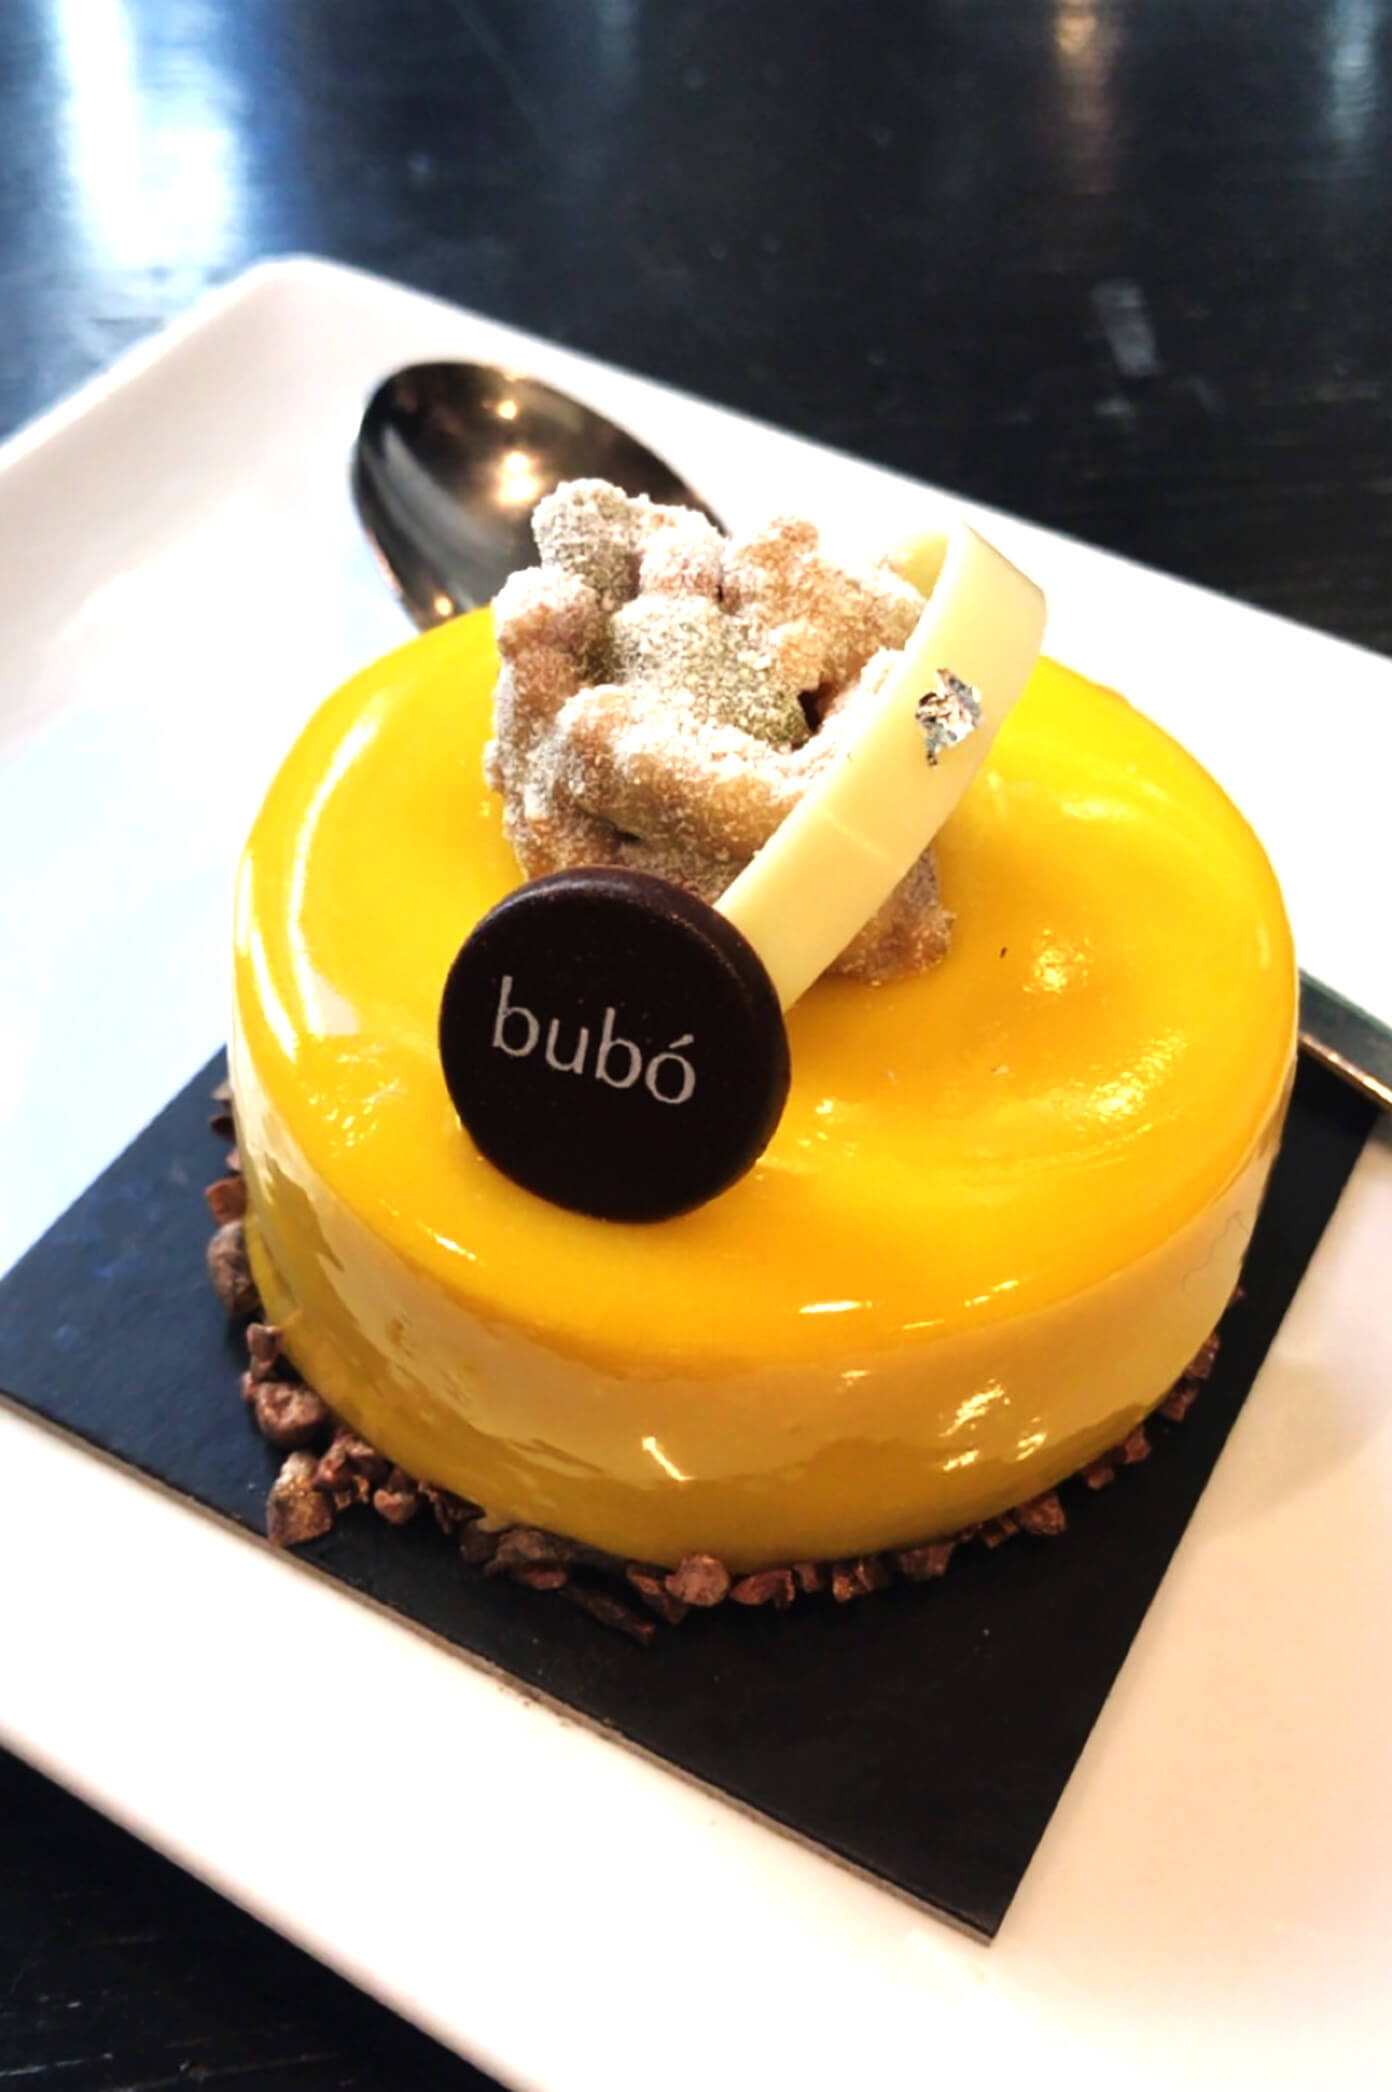 Bubó pastries and cakes | Gimme Some Barcelona Travel Guide